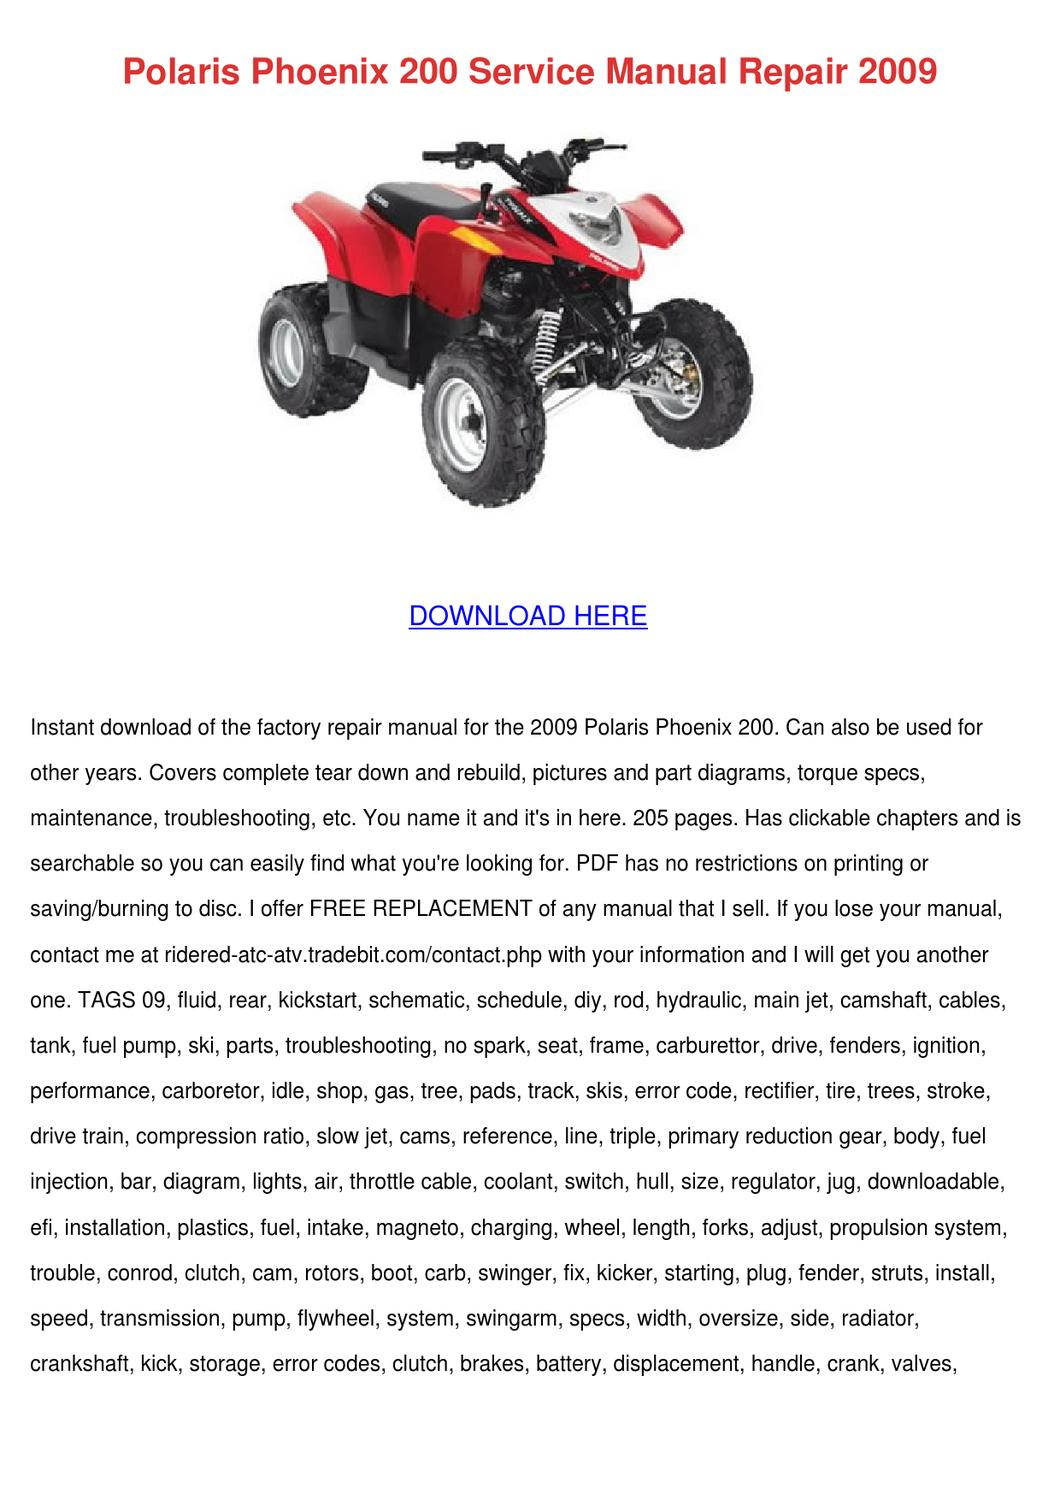 Polaris Phoenix 200 Service Manual Repair 200 by Ethelyn Hrycenko - issuu